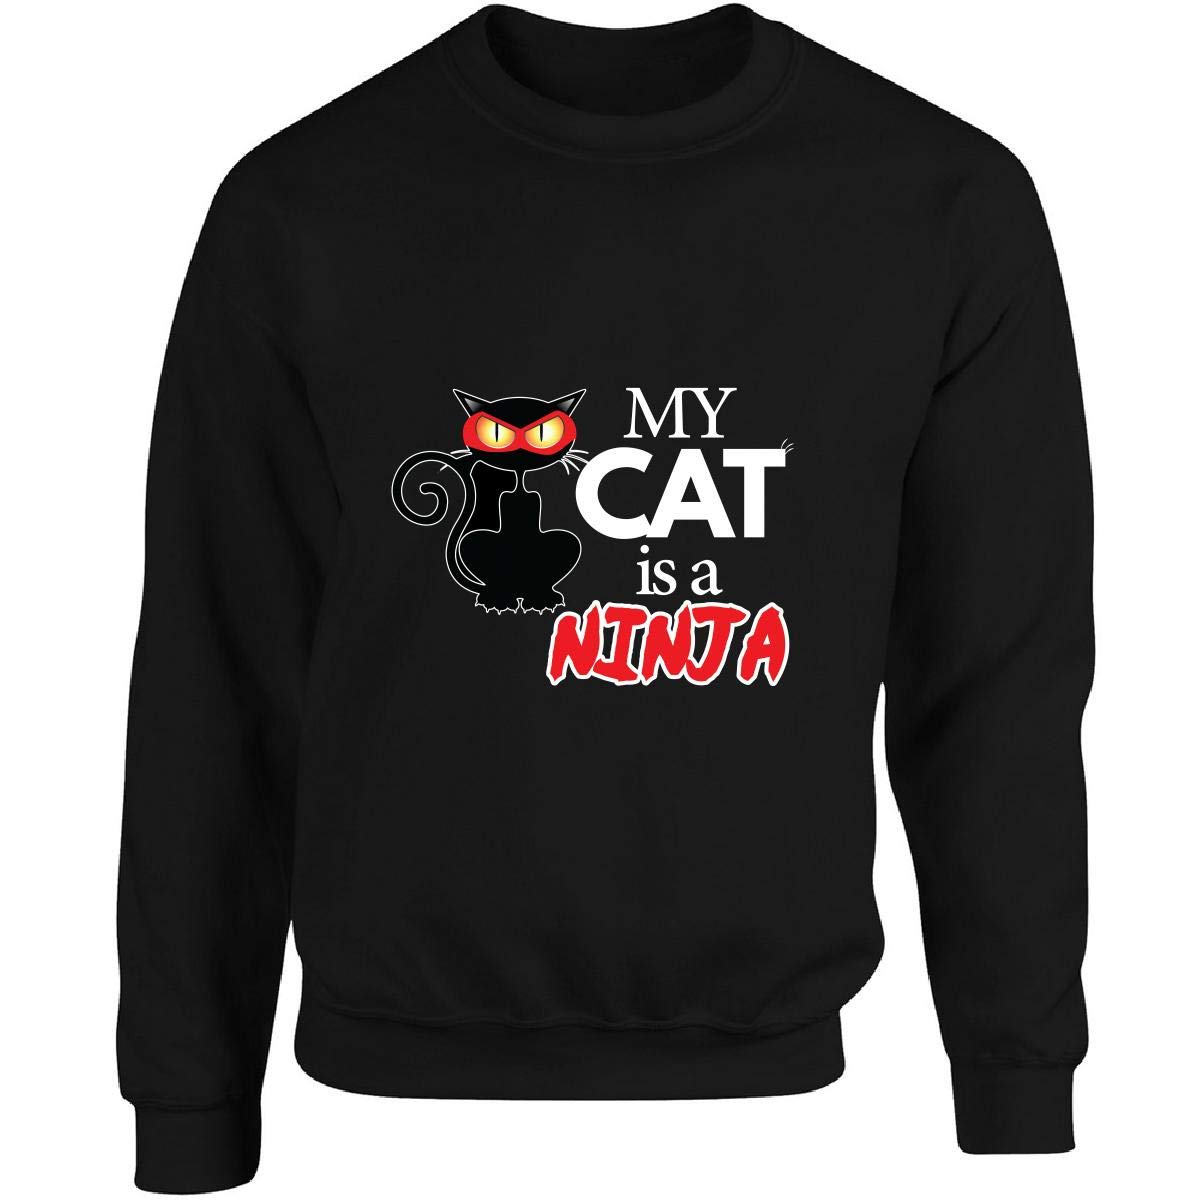 My Cat is A Ninja Great Cat Artwork with Catchy Tagline ...